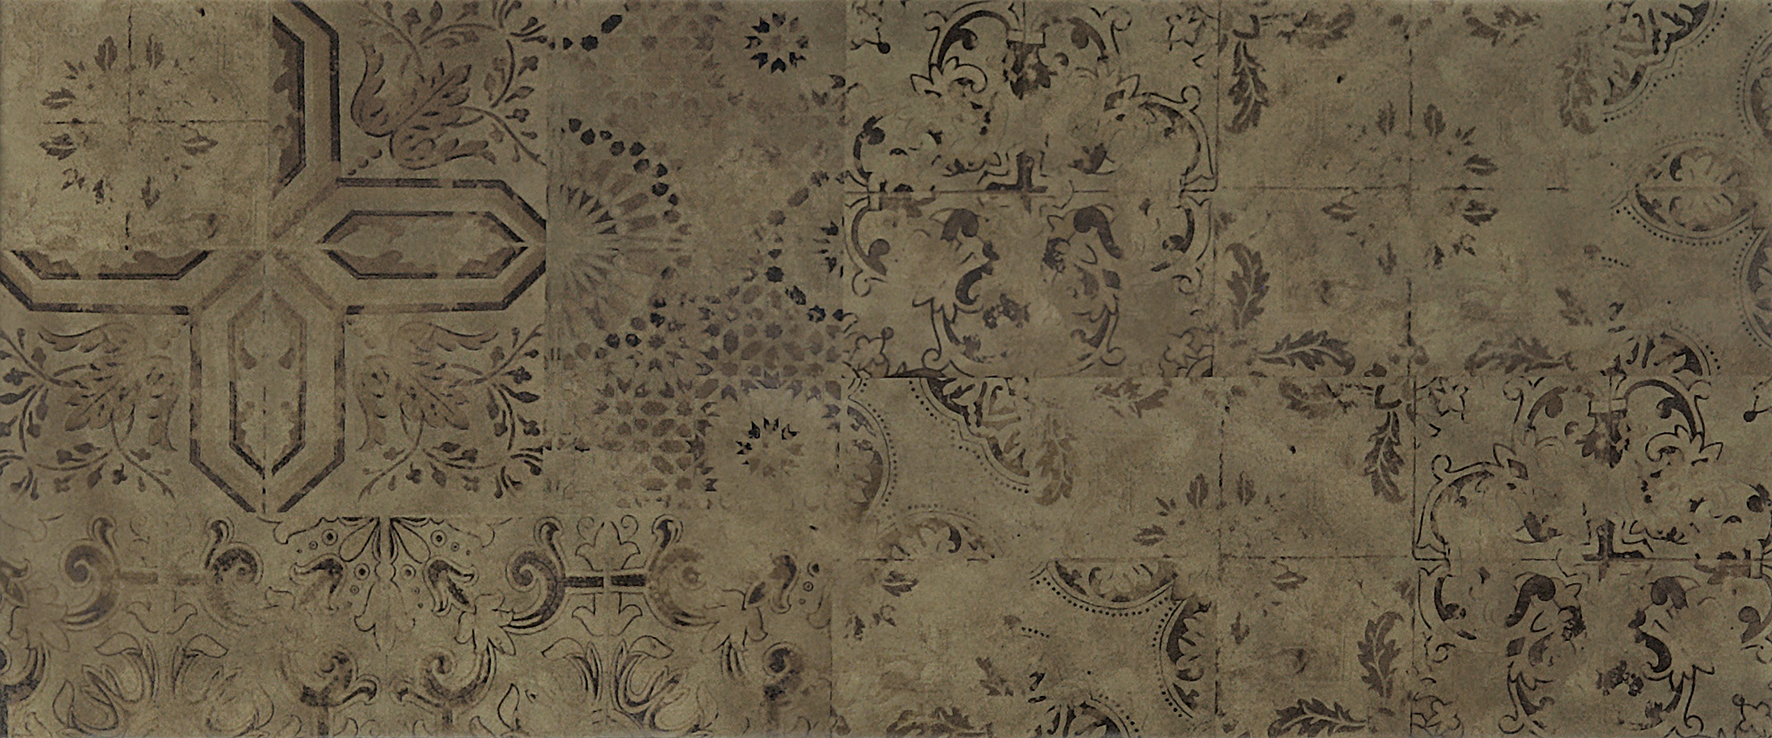 Patchwork brown Плитка настенная 03 25х60 настенная плитка gracia ceramica corso brown pg 01 15x60